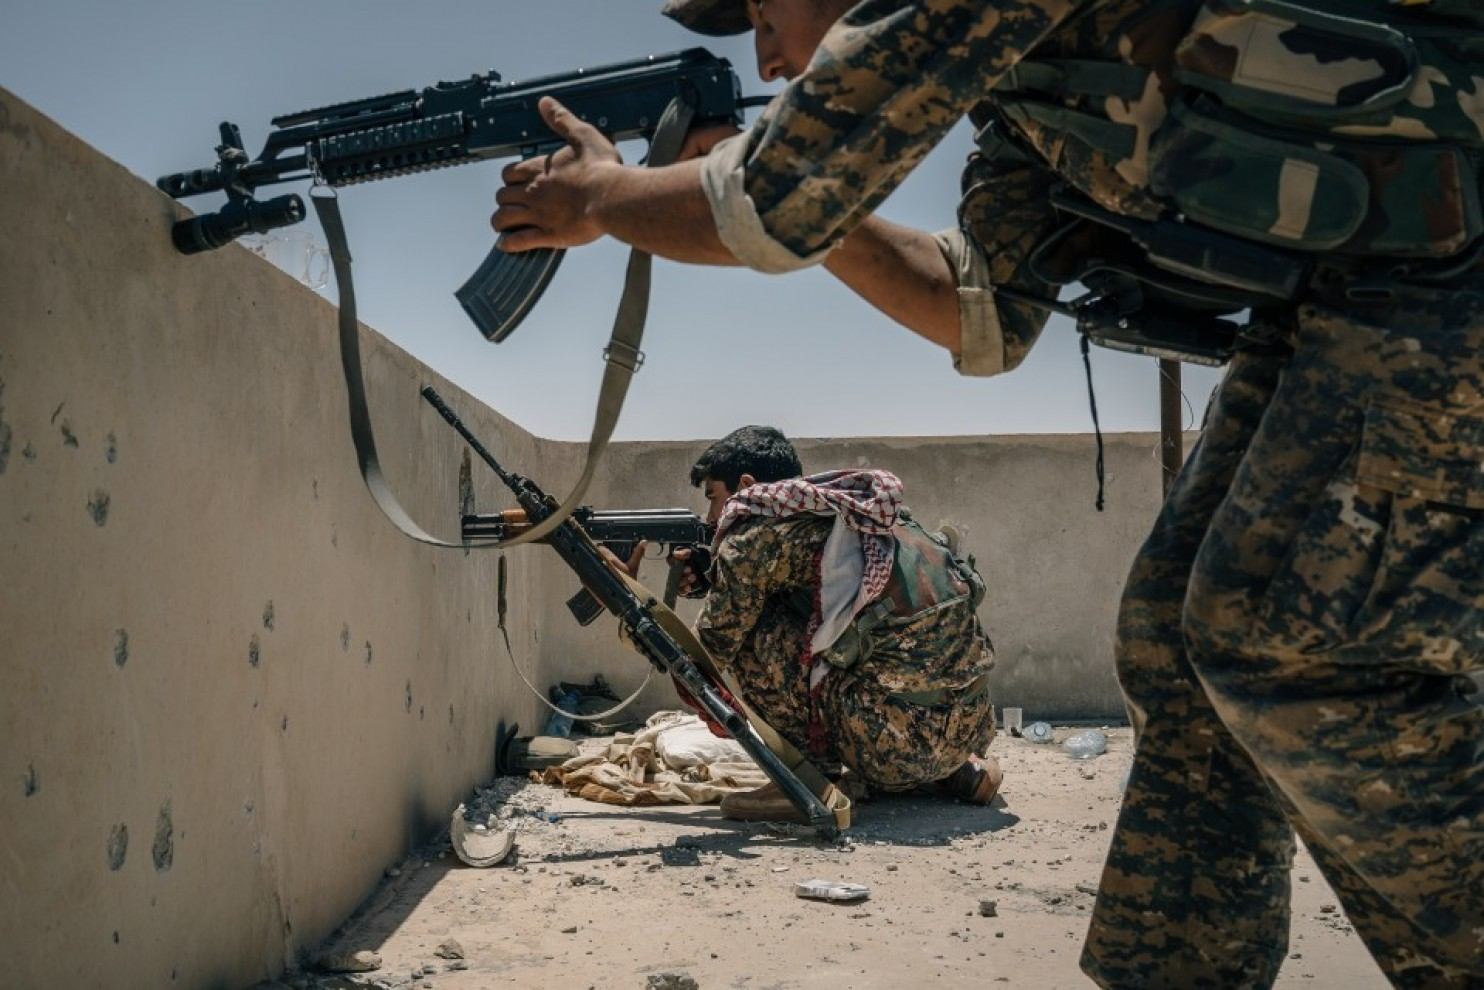 US trains 30,000 SDF members east Syria to 'contain' Iran